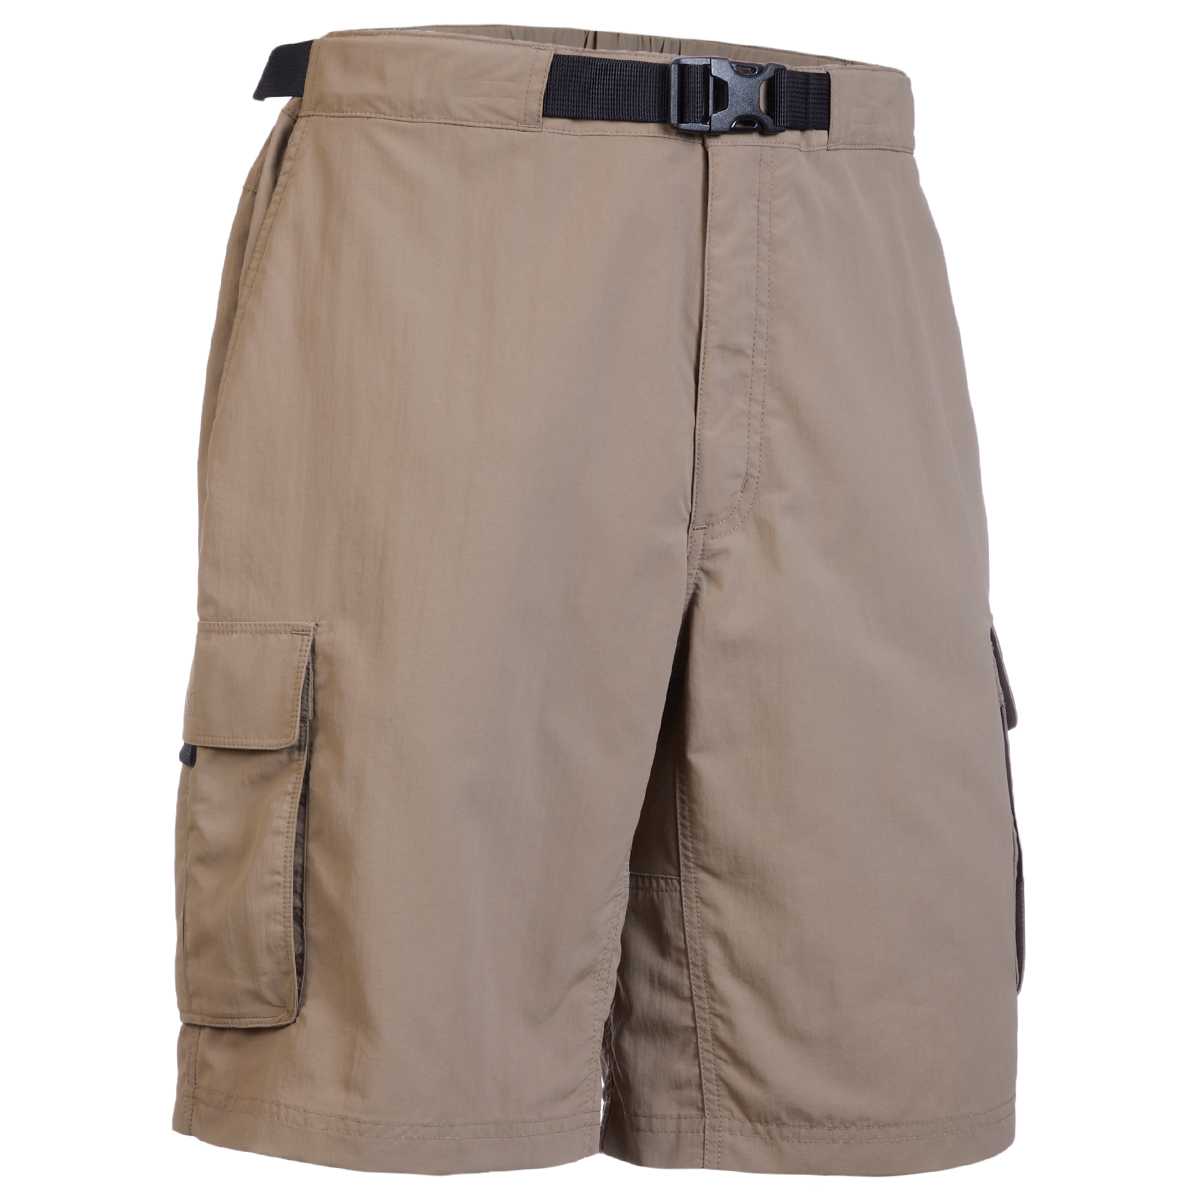 Ems Men's Camp Cargo Shorts - White, 40